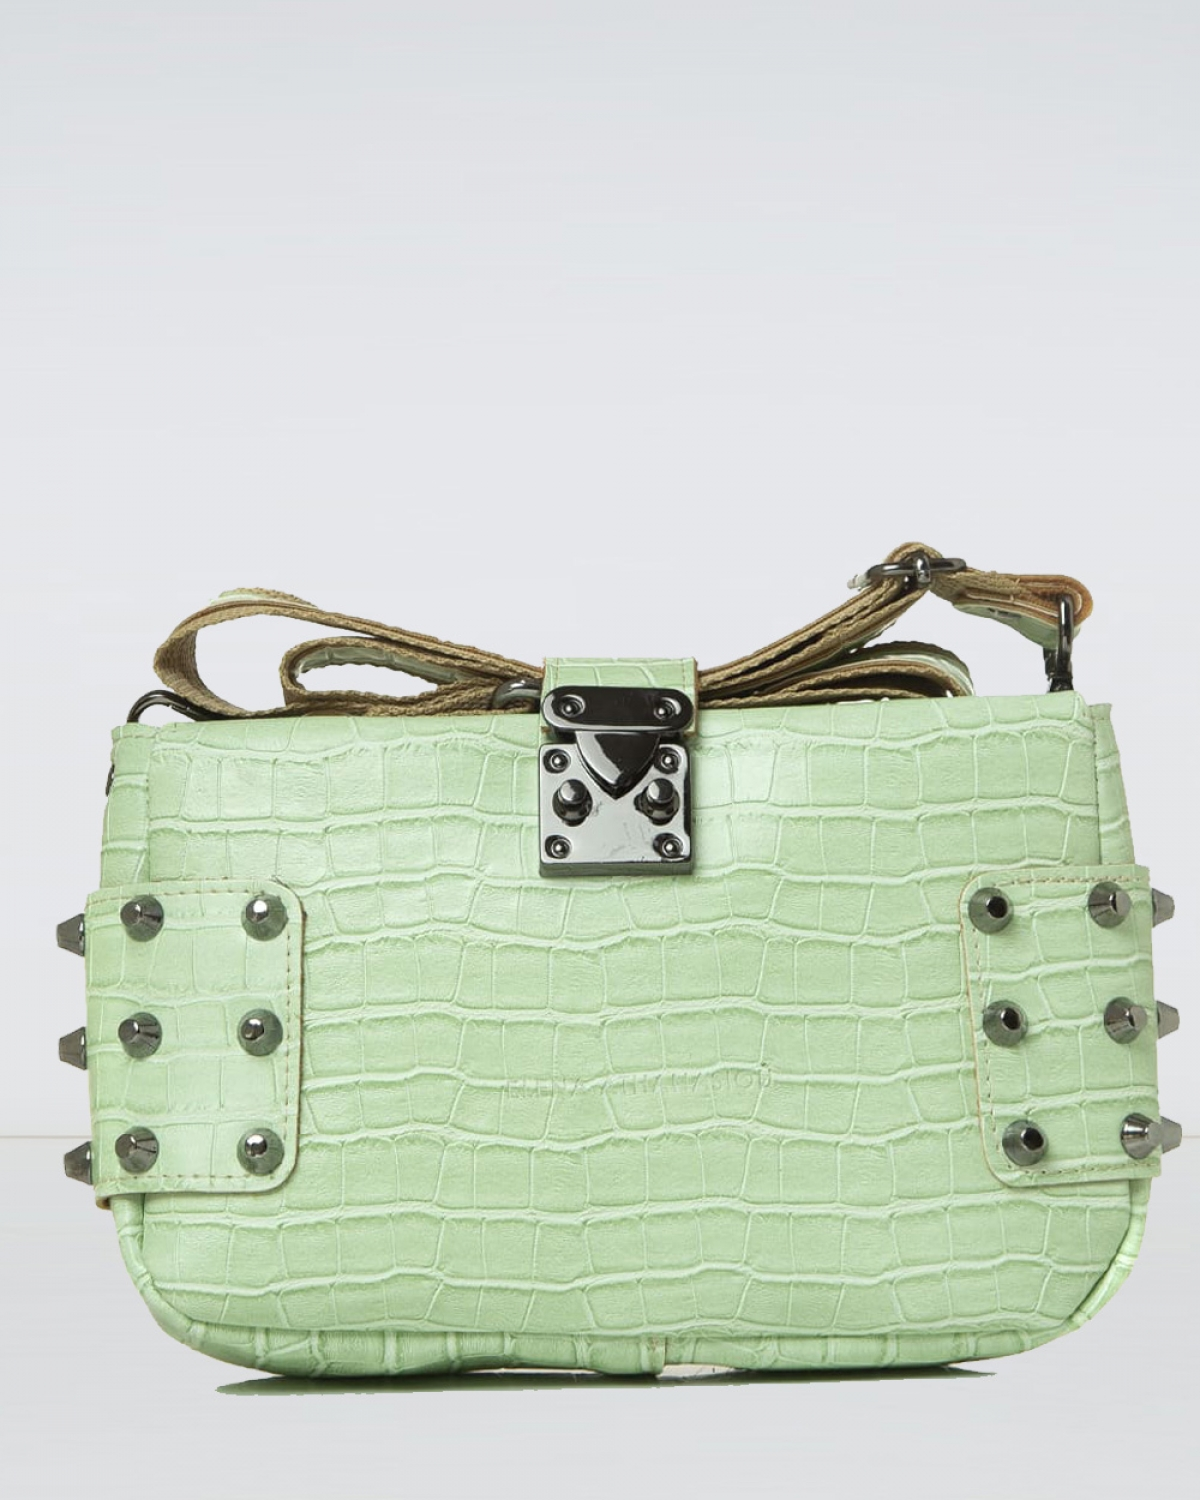 City Lady Clutch Croco Mint Bag